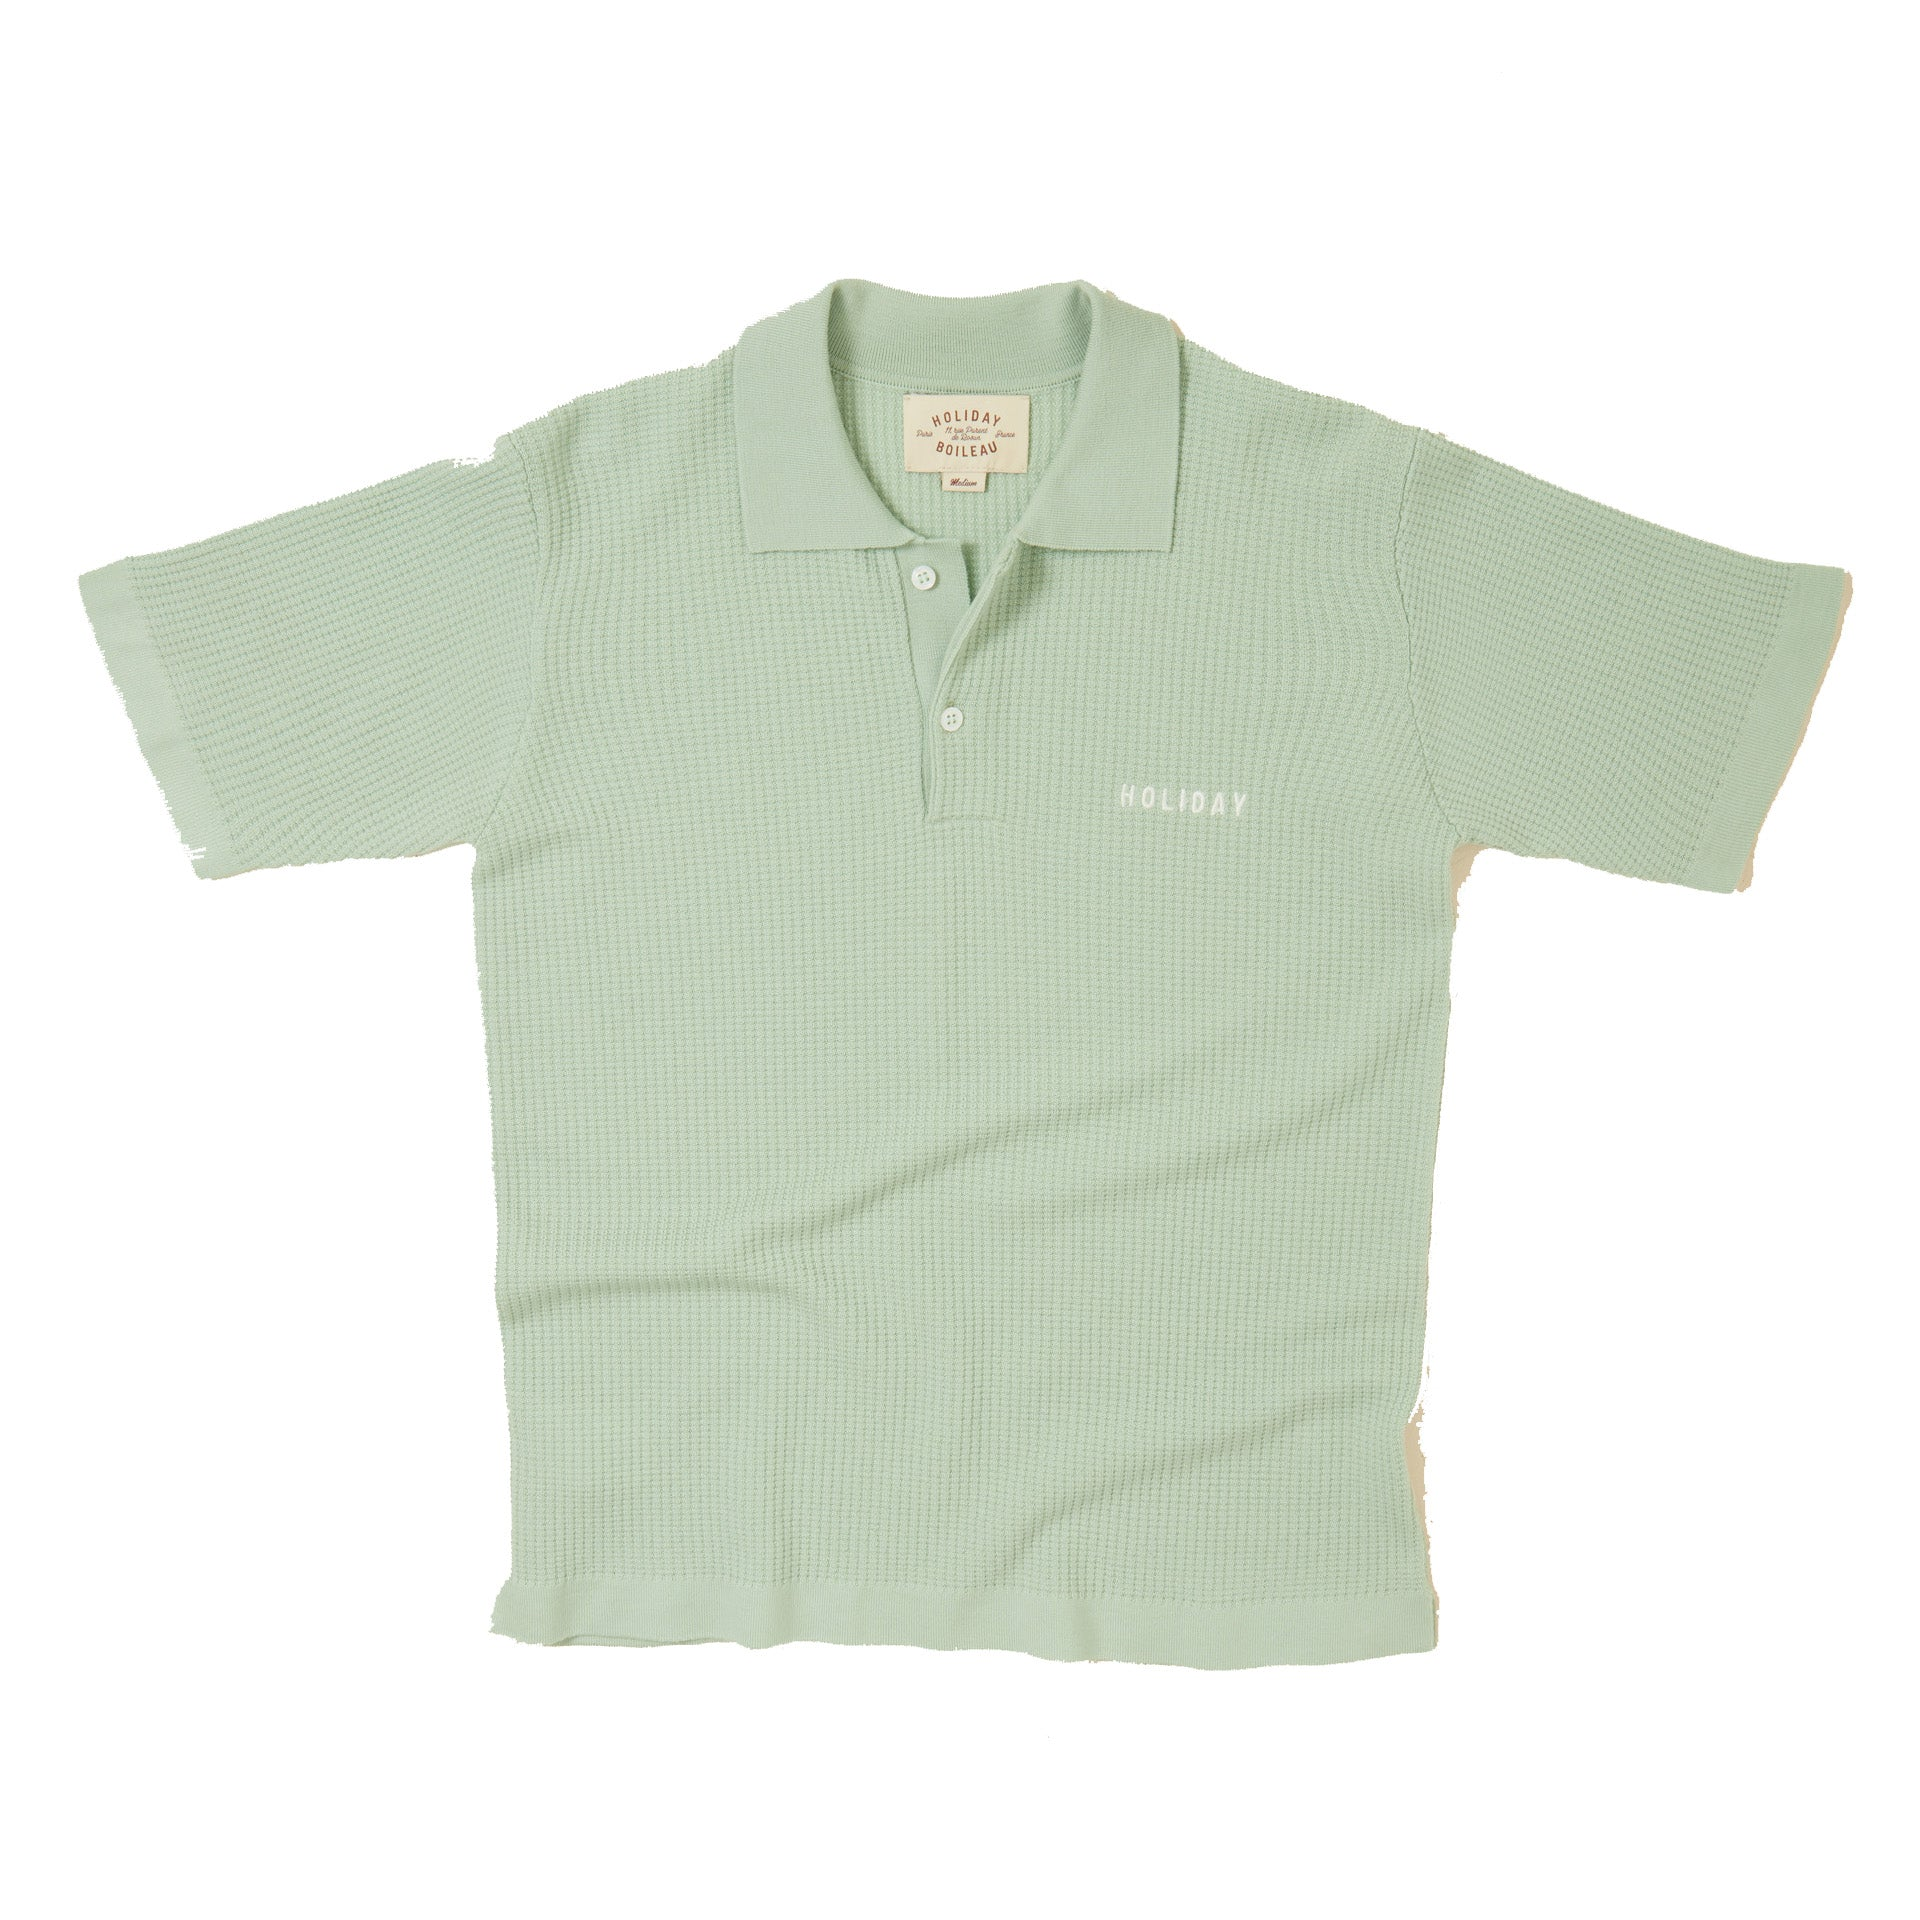 The Jagger Polo by Holiday Boileau. Verde